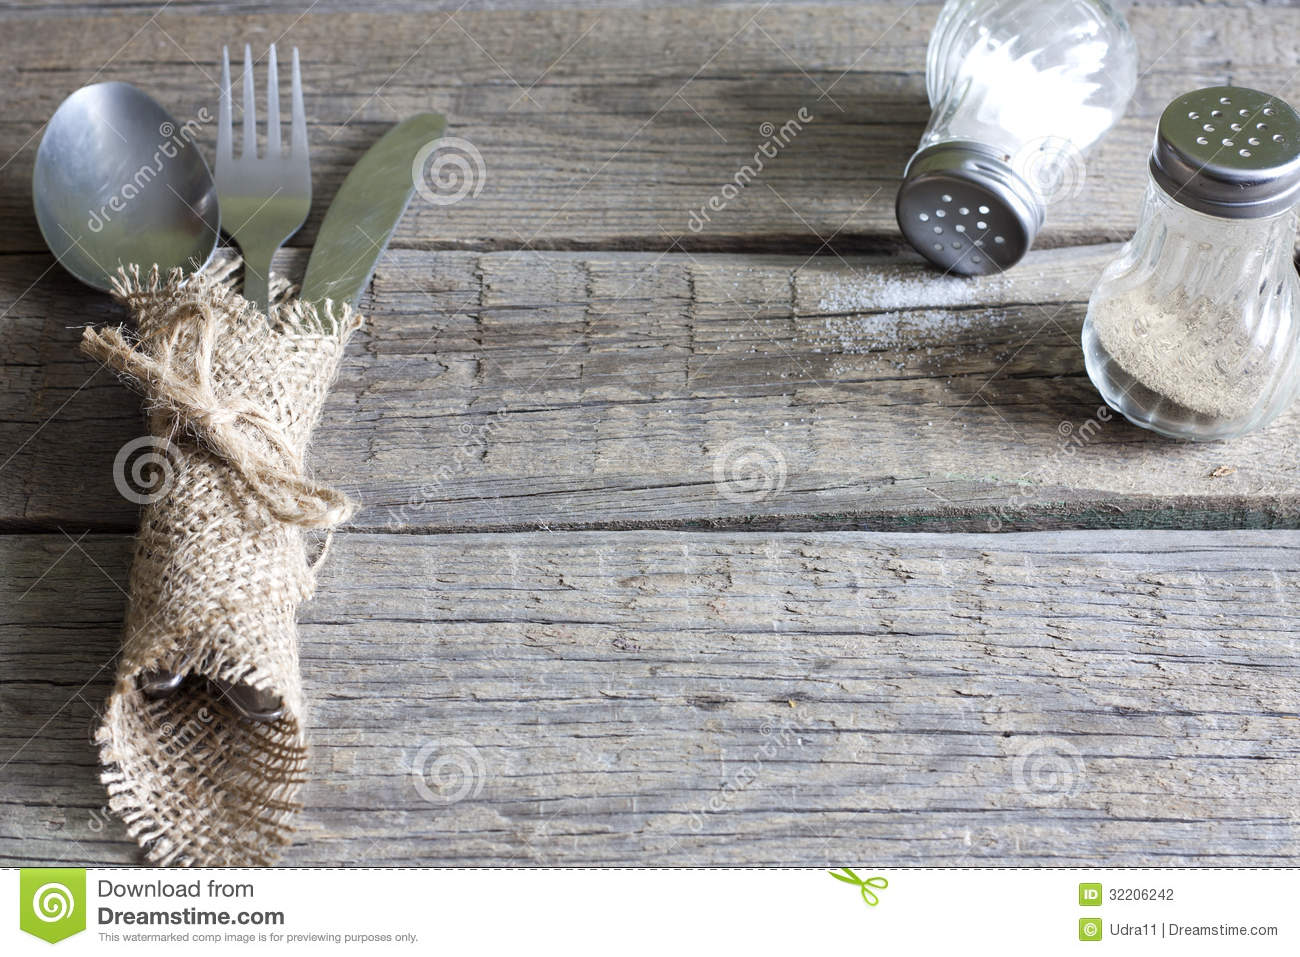 Cutlery Kitchenware On Old Wooden Boards Background Stock